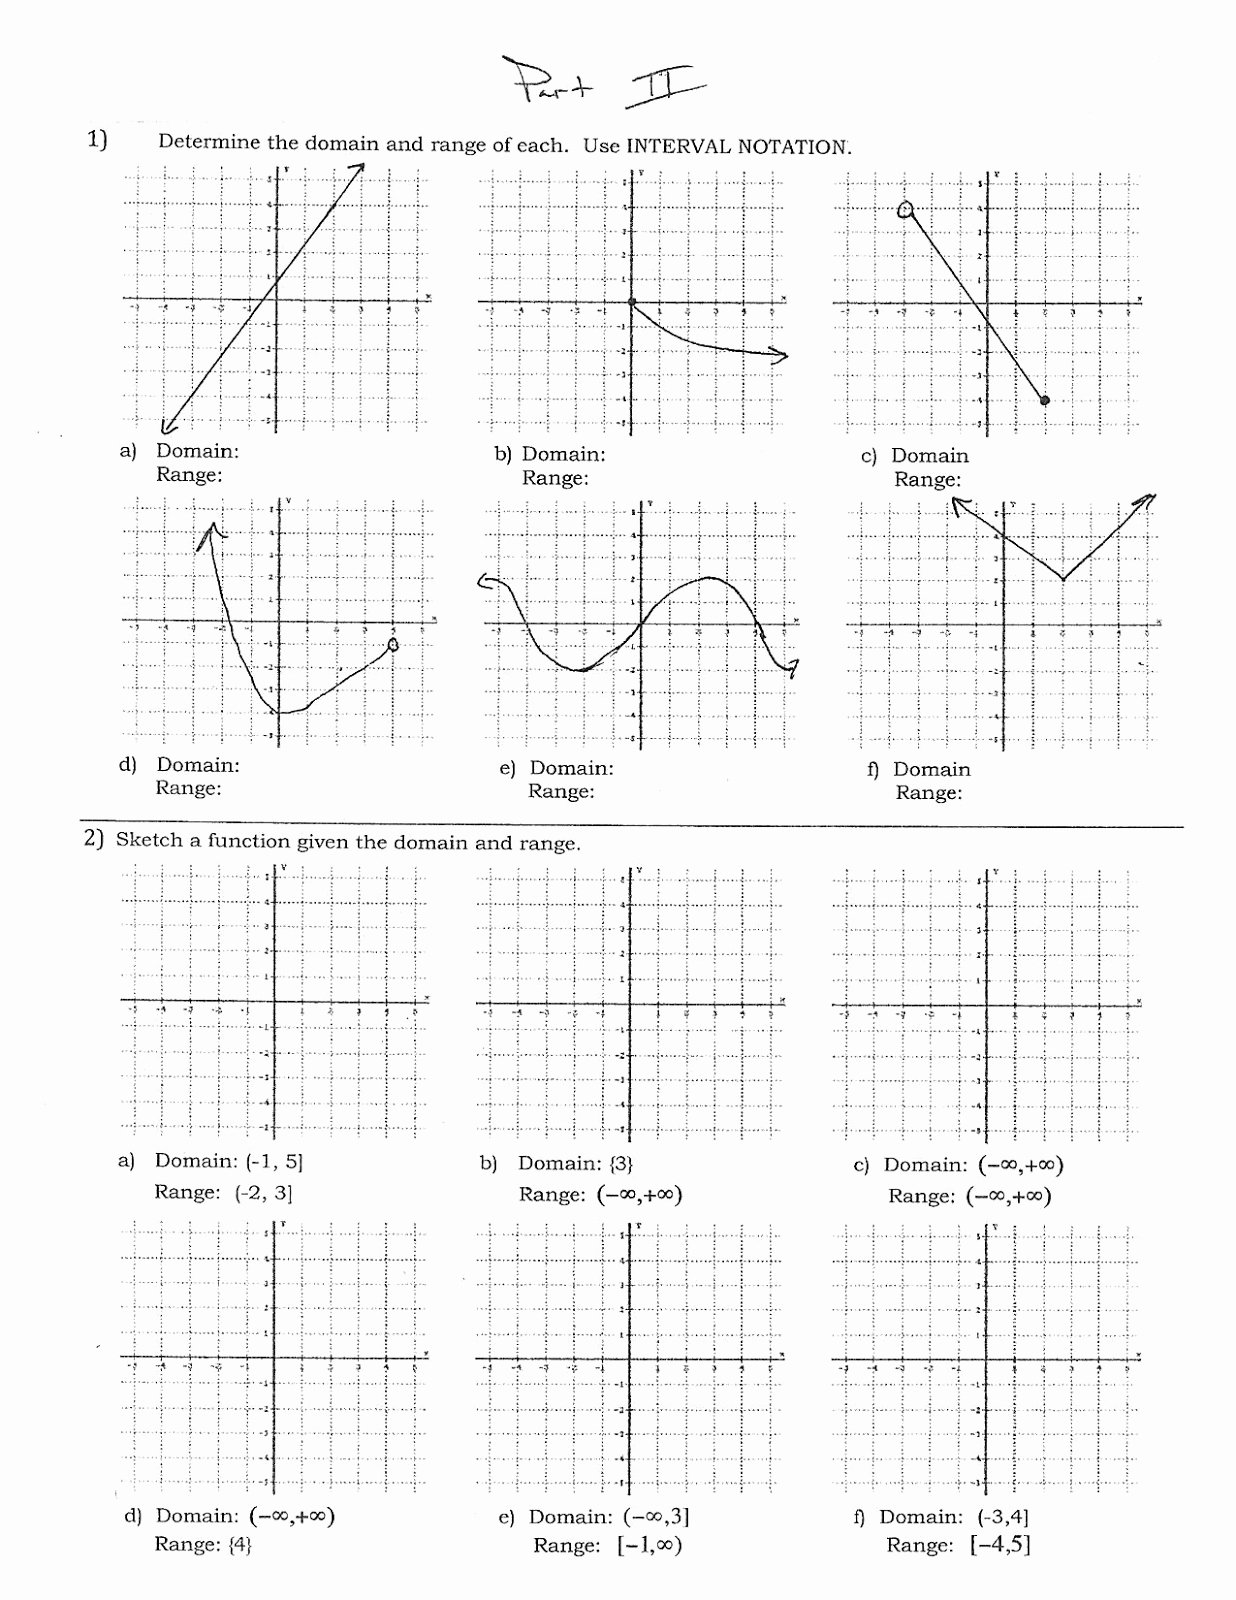 Domain and Range Worksheet 1 Beautiful Domain and Range Matching Activity Worksheet Answers